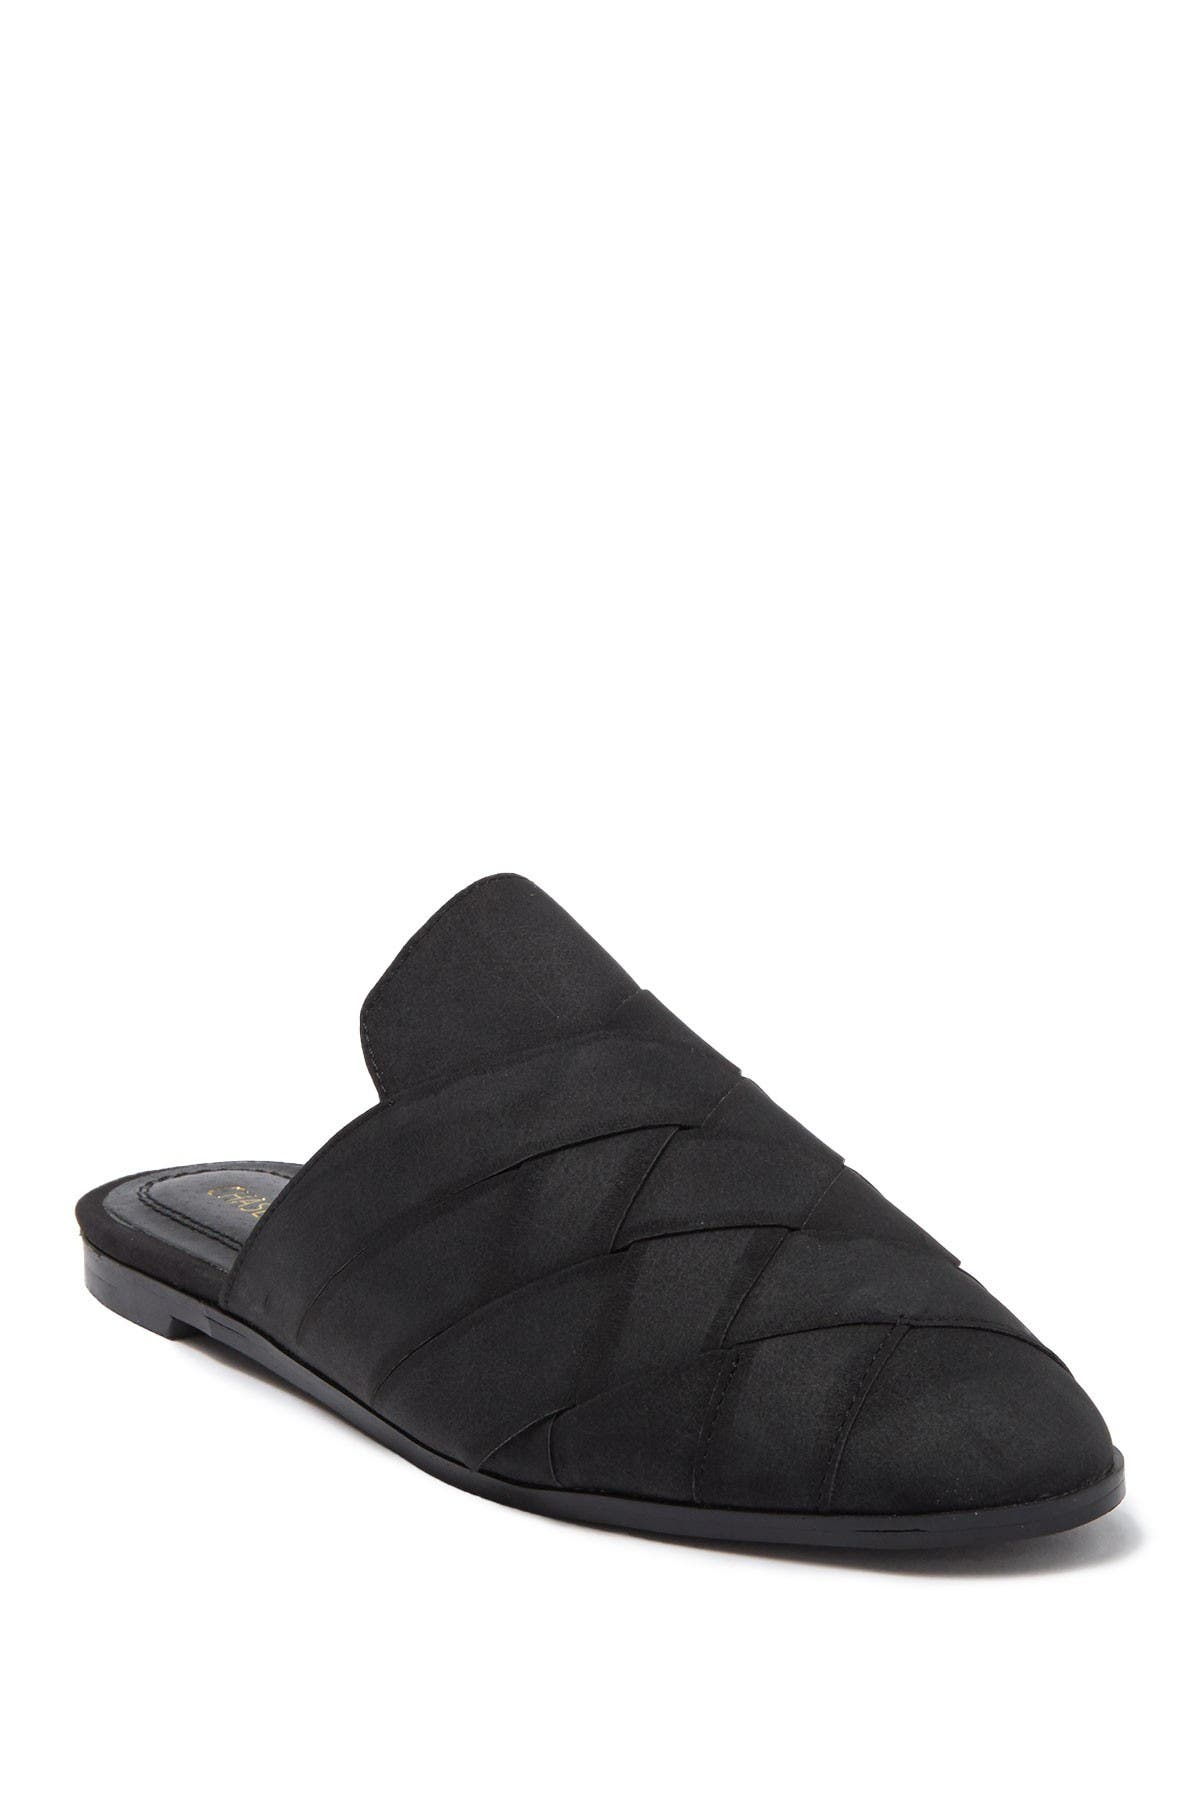 Image of Chase & Chloe Melvin Woven Mule Flat